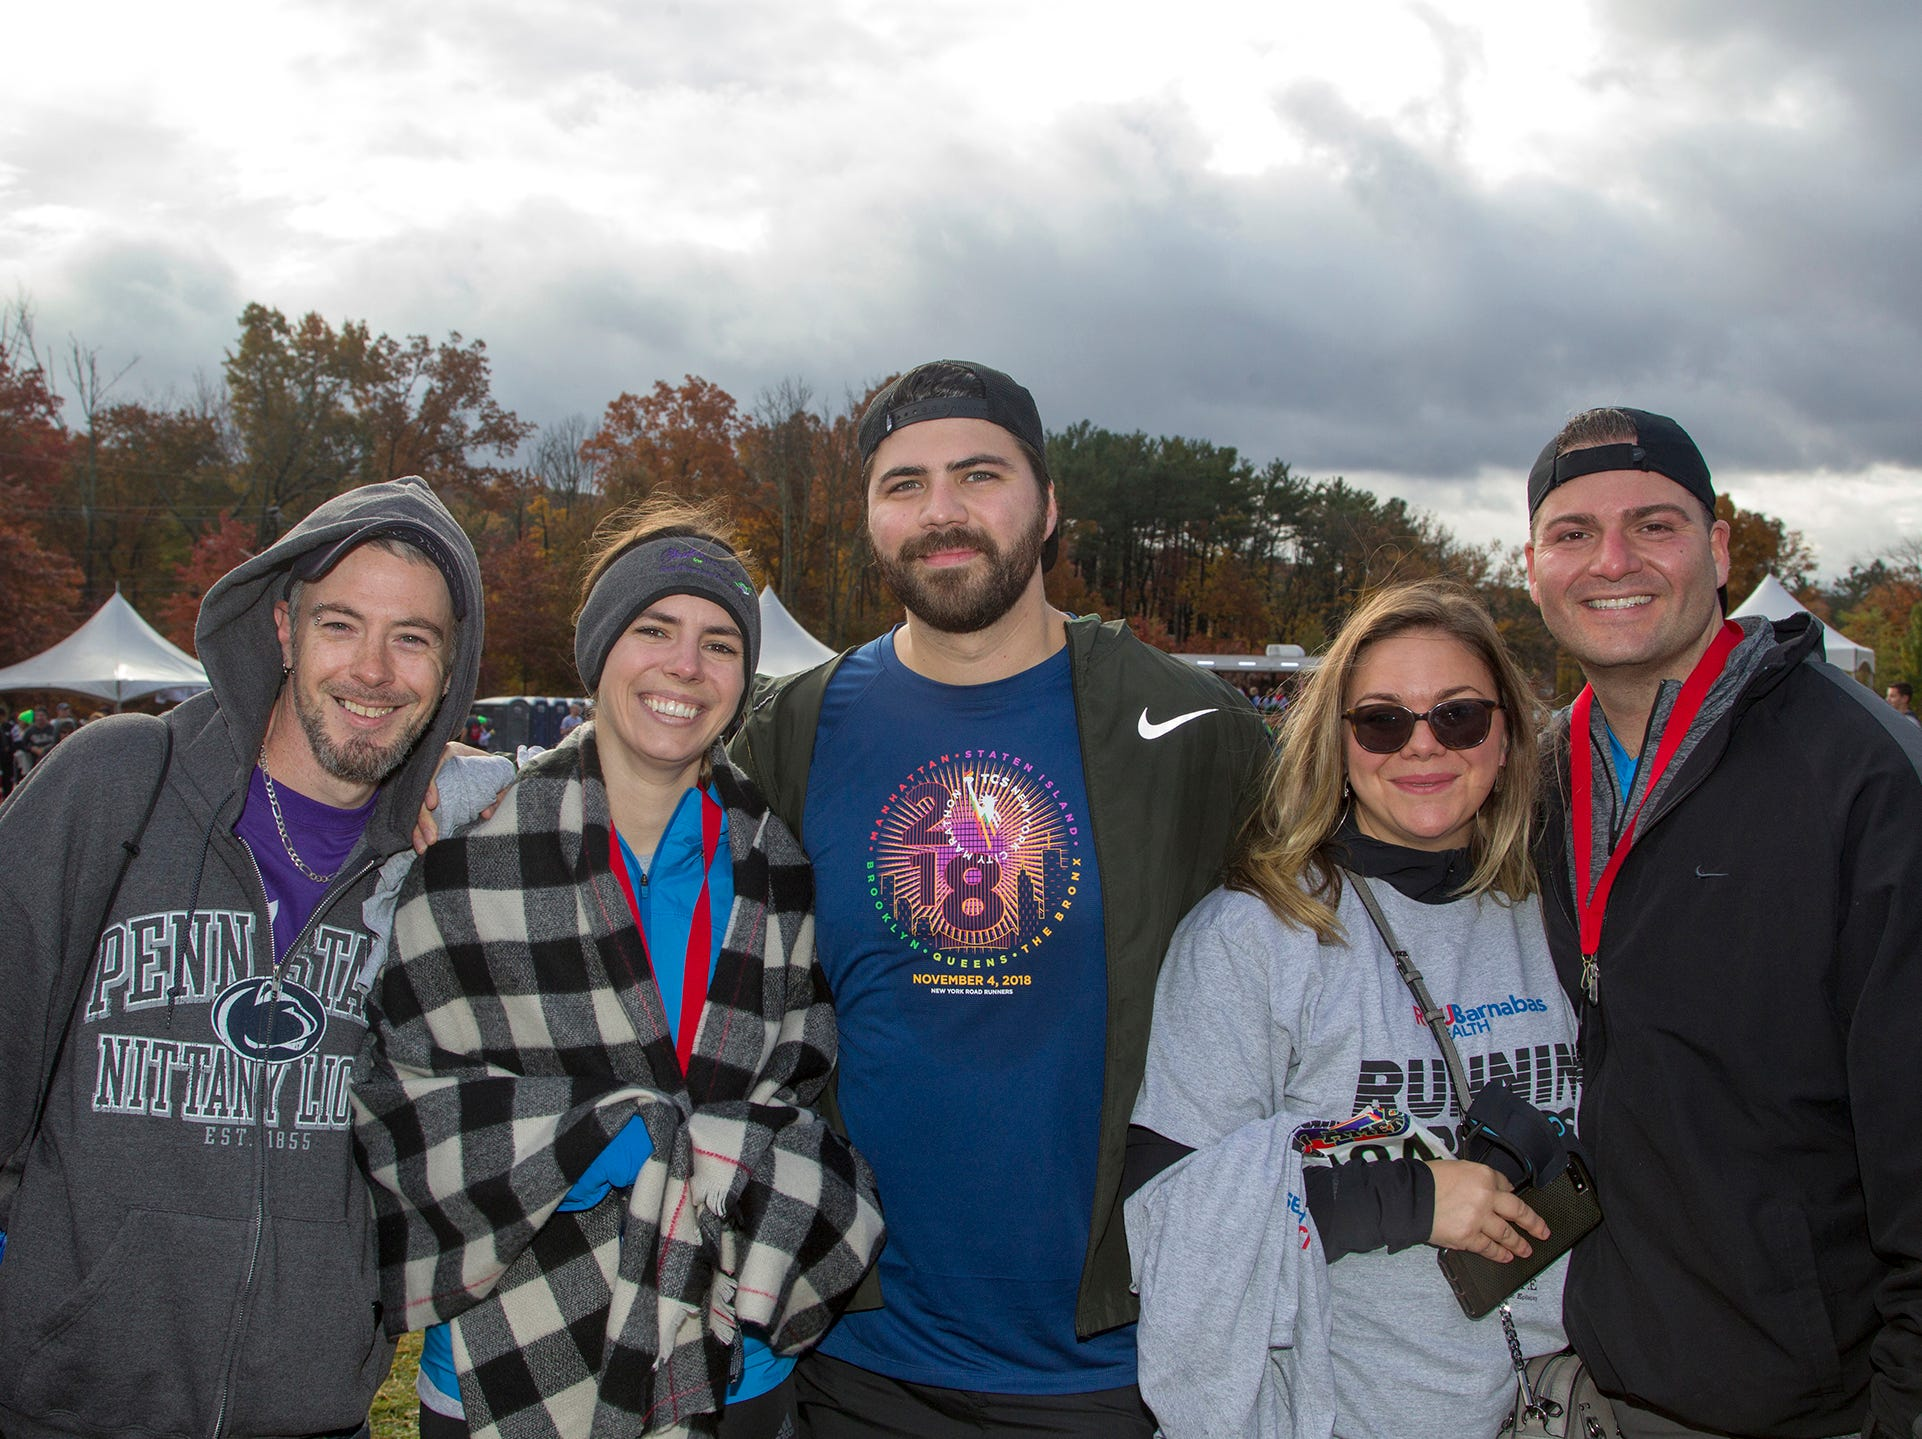 Daniel, mary, Adam, Taran, Steve. RWJBarnabas Health Running with the Devils 5K Run and Family Fun Walk at South Mountain Recreation in West Orange. 10/03/2018